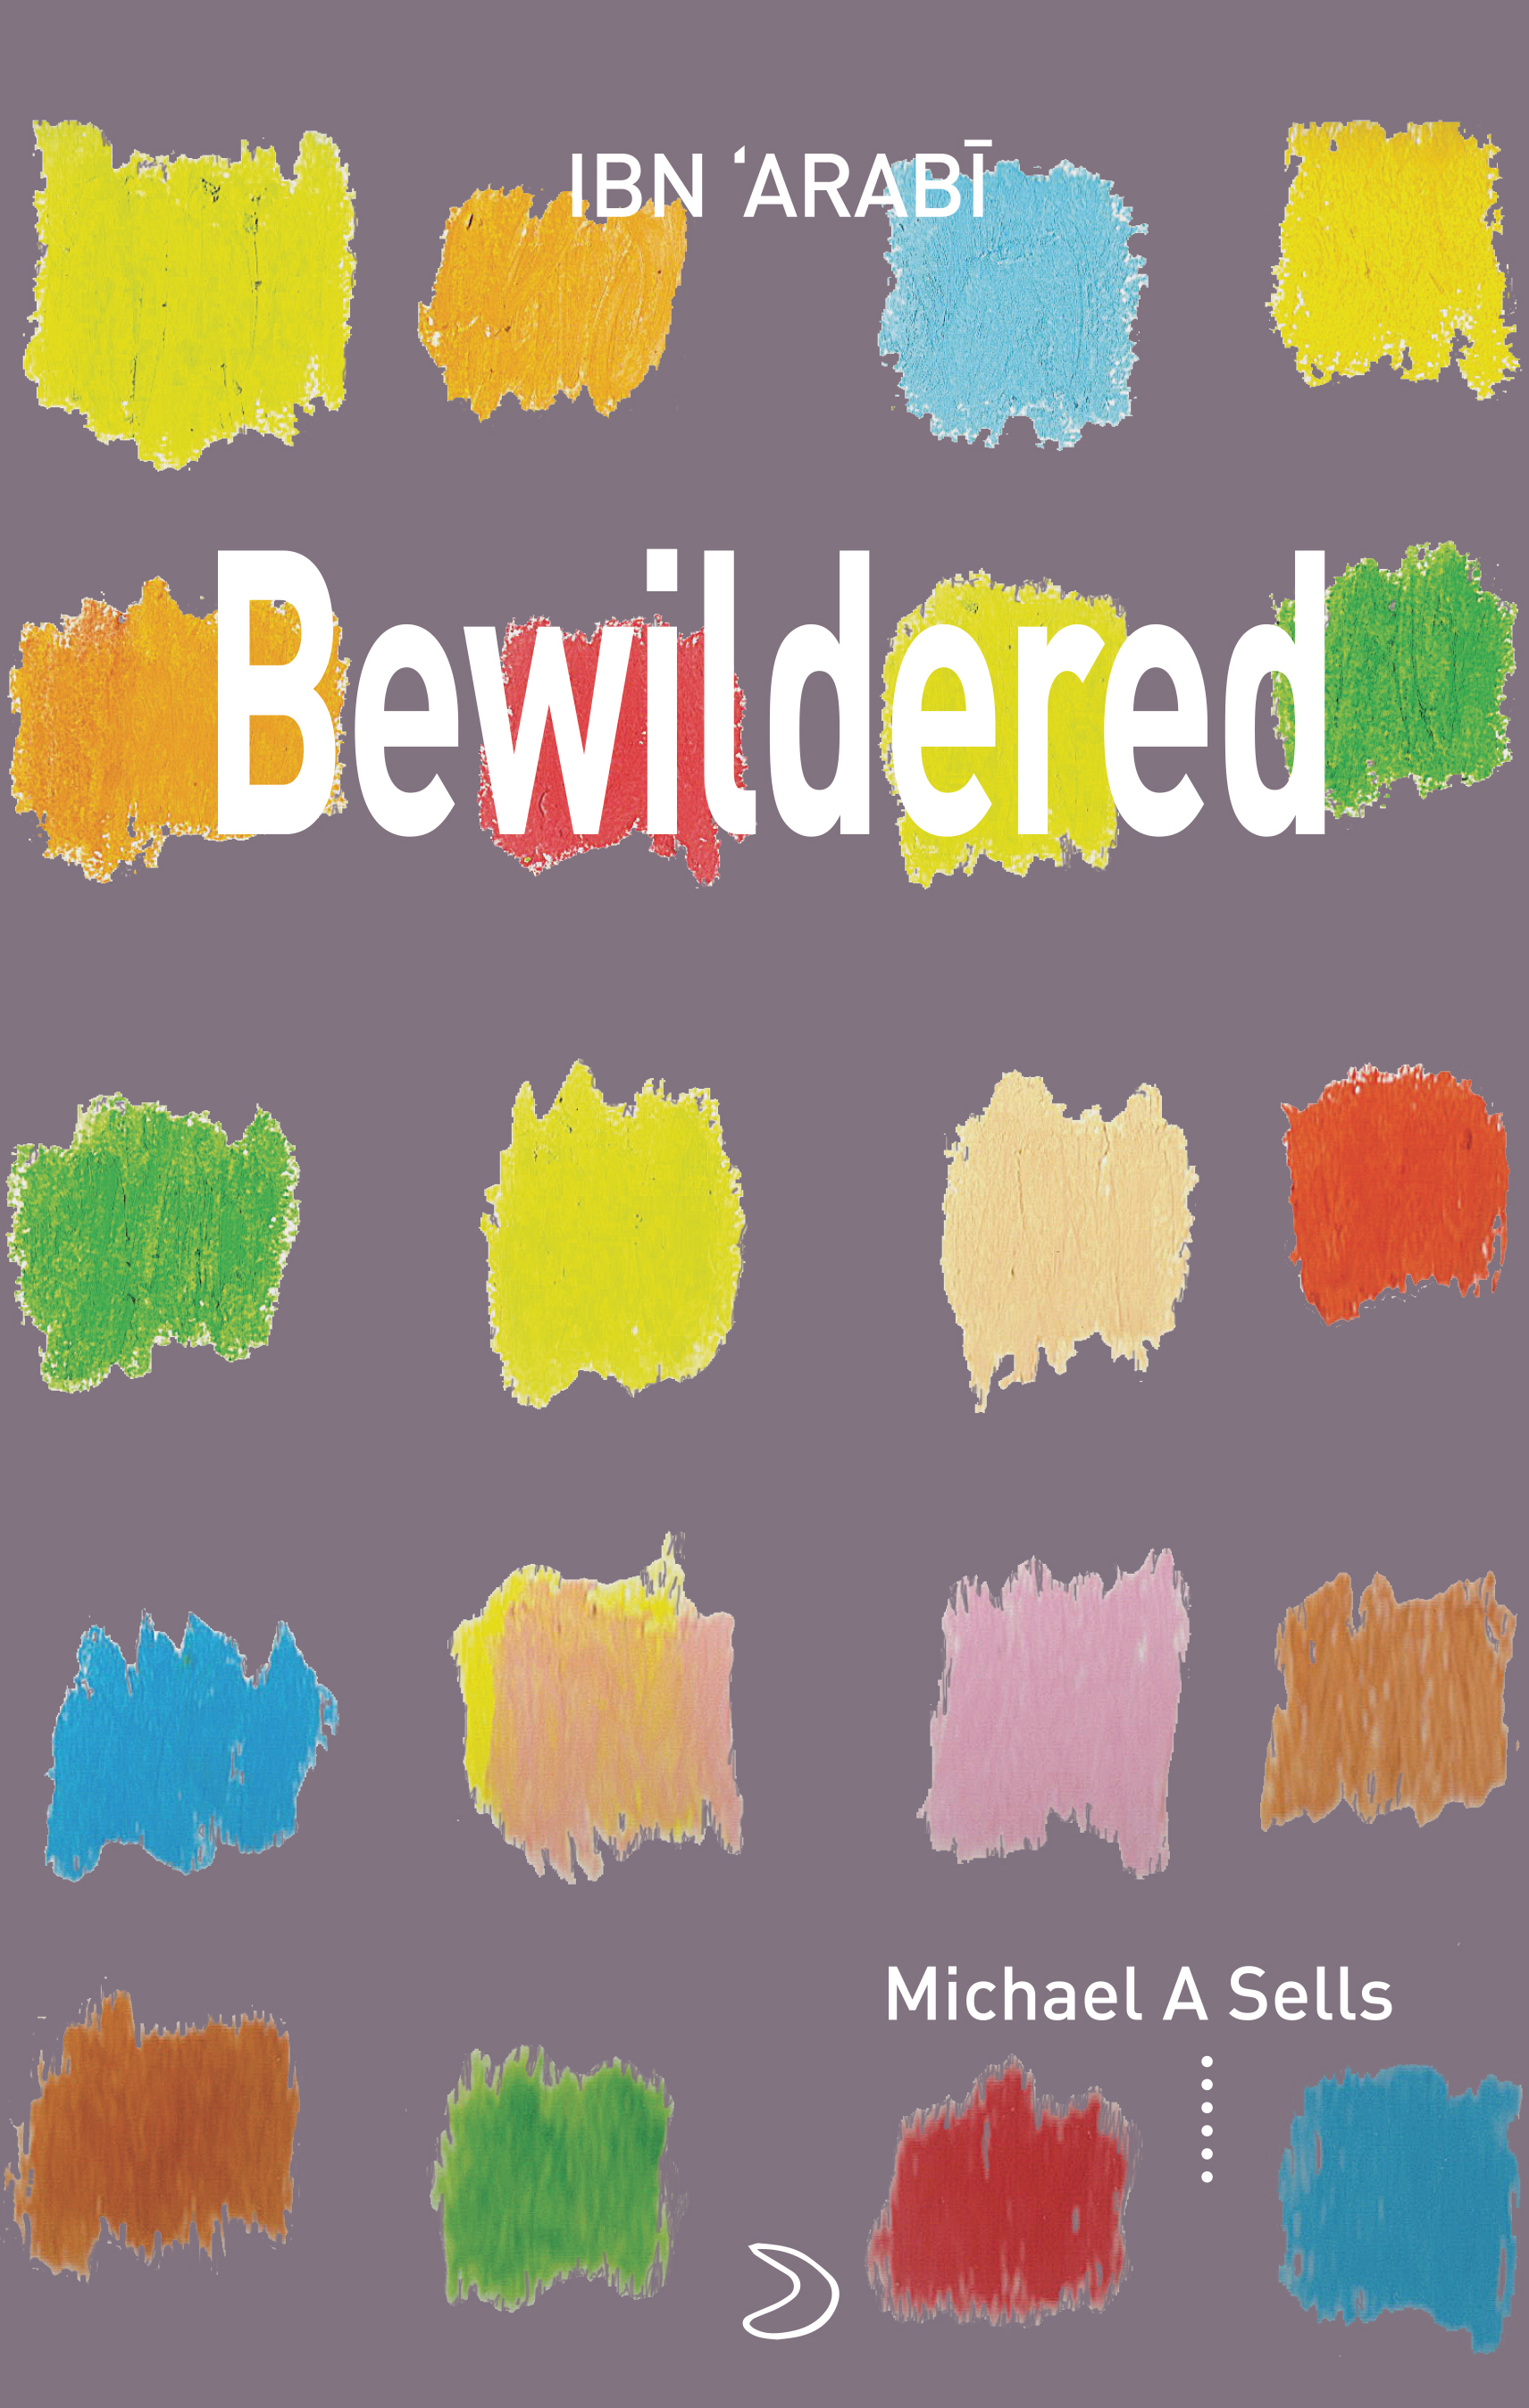 Bewildered: Love Poems from Translation of Desires